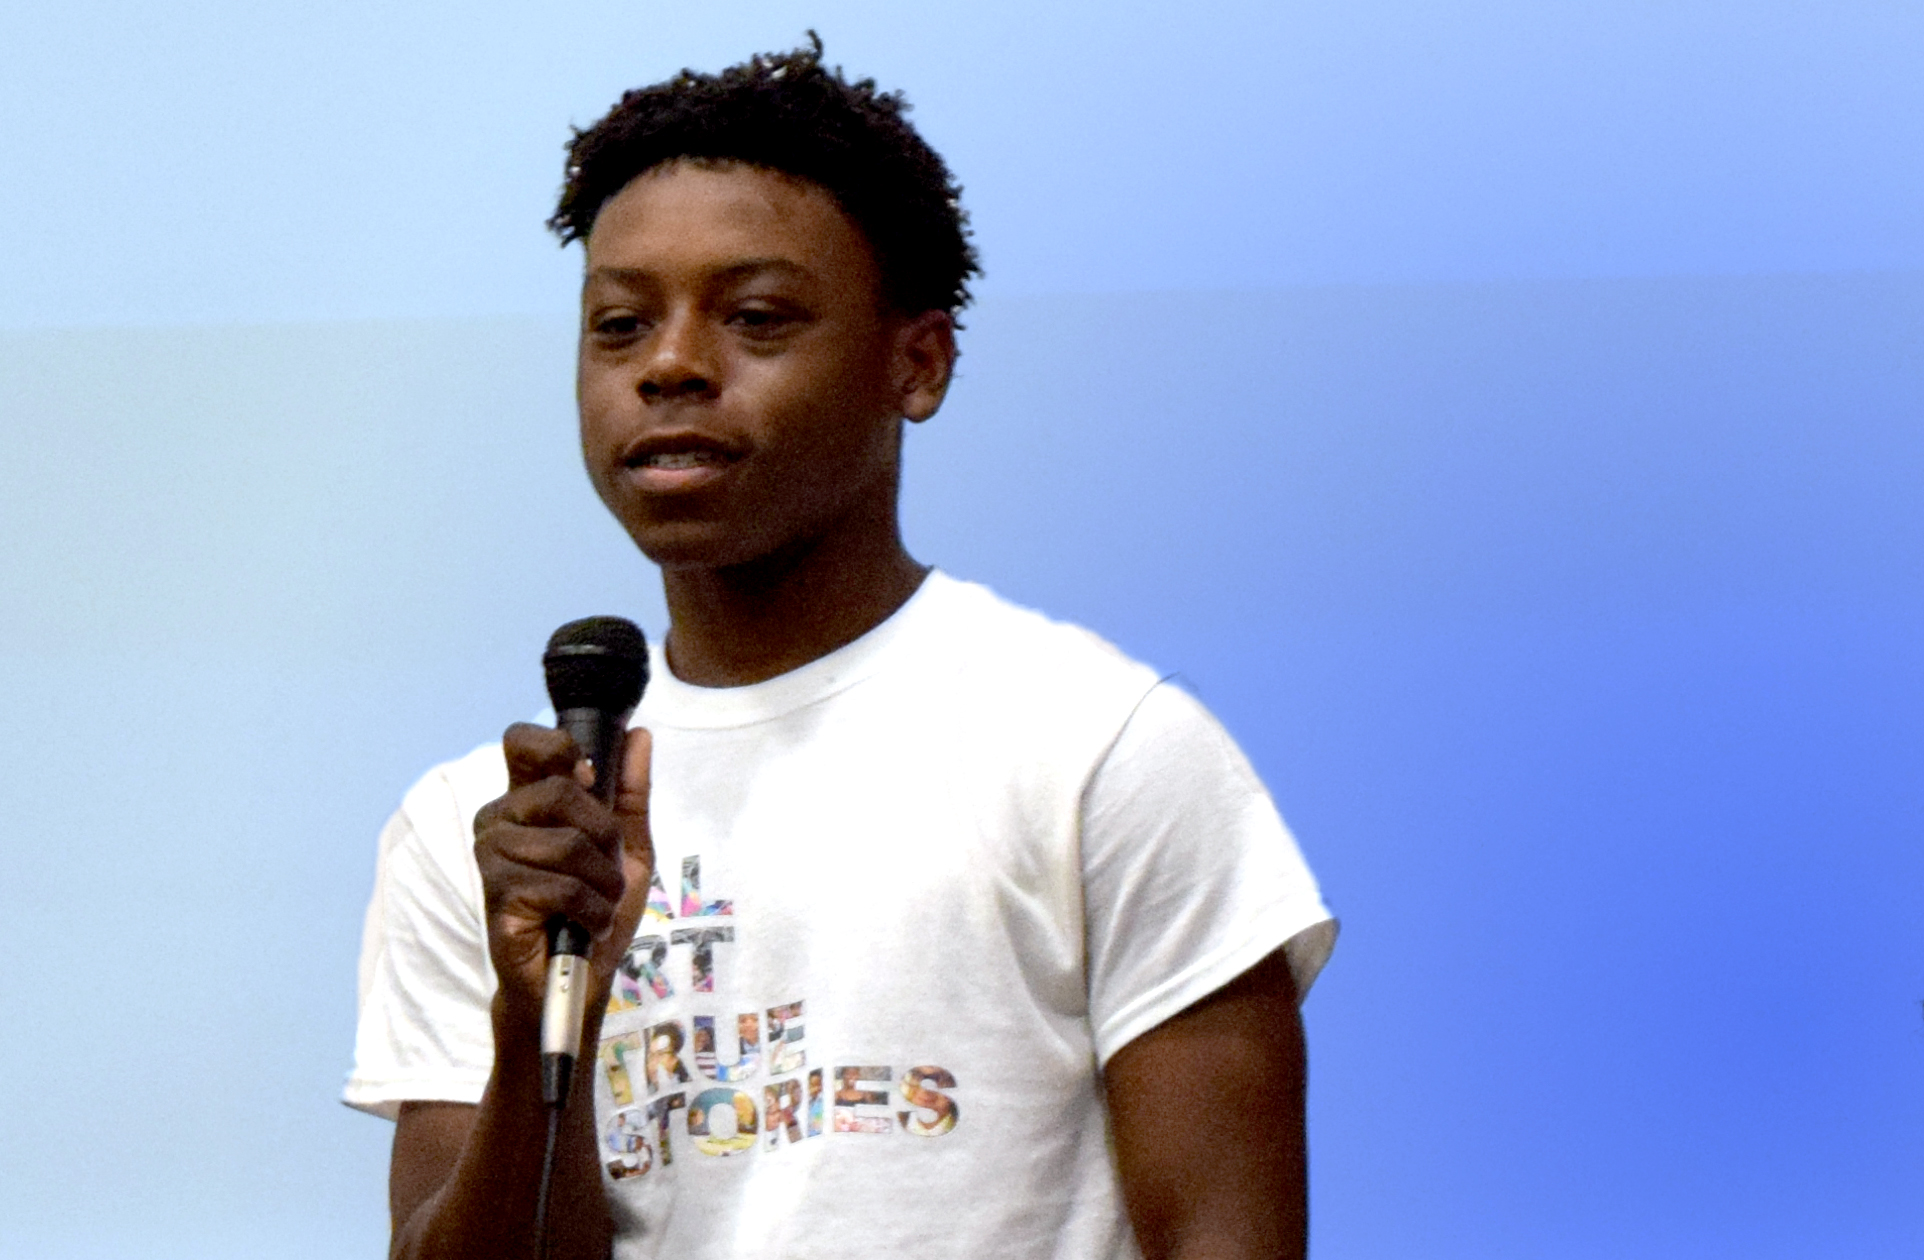 Brandon Trent - 2019 Summer Youth ApprenticeI was very excited to work on the Randolph Houses film, because it's based in Harlem, and I wanted to do something that was based on my culture. My favorite part of this summer was getting to meet all the people and see their reactions to this positive thing that we're doing.